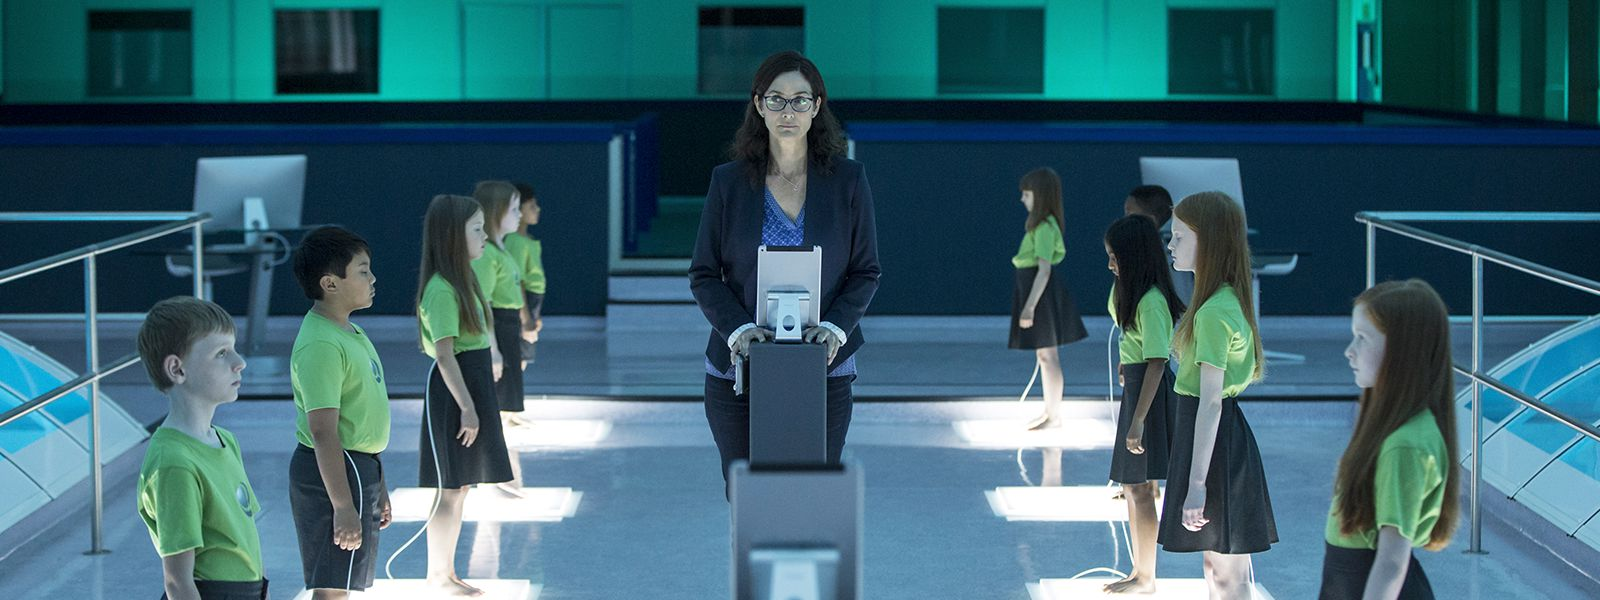 humans-206-post-athena-moss-800×600